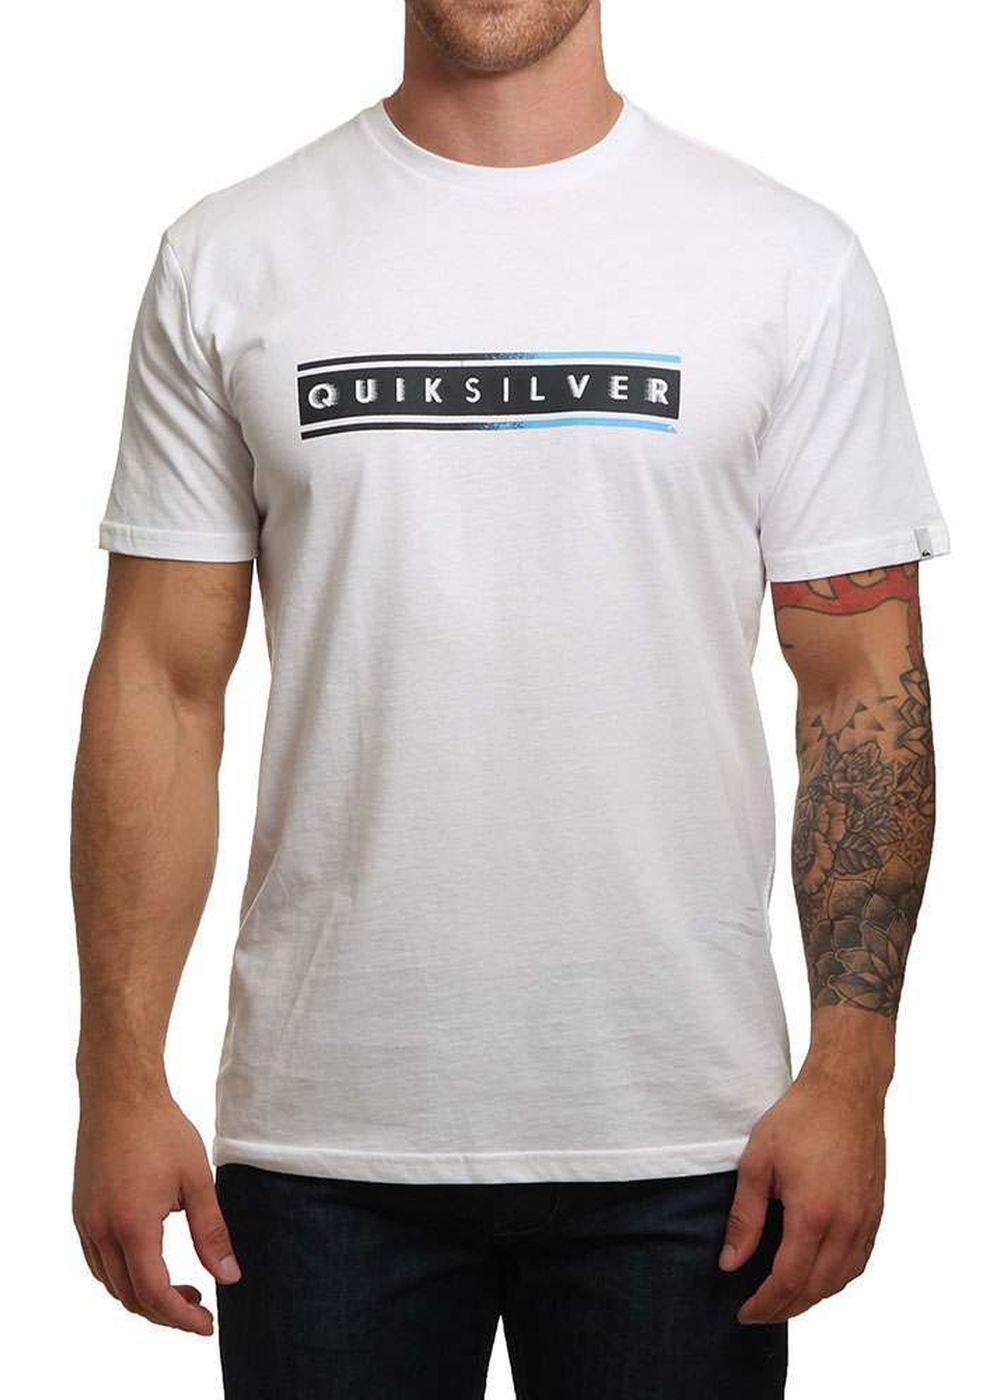 quiksilver-daily-surf-tee-white